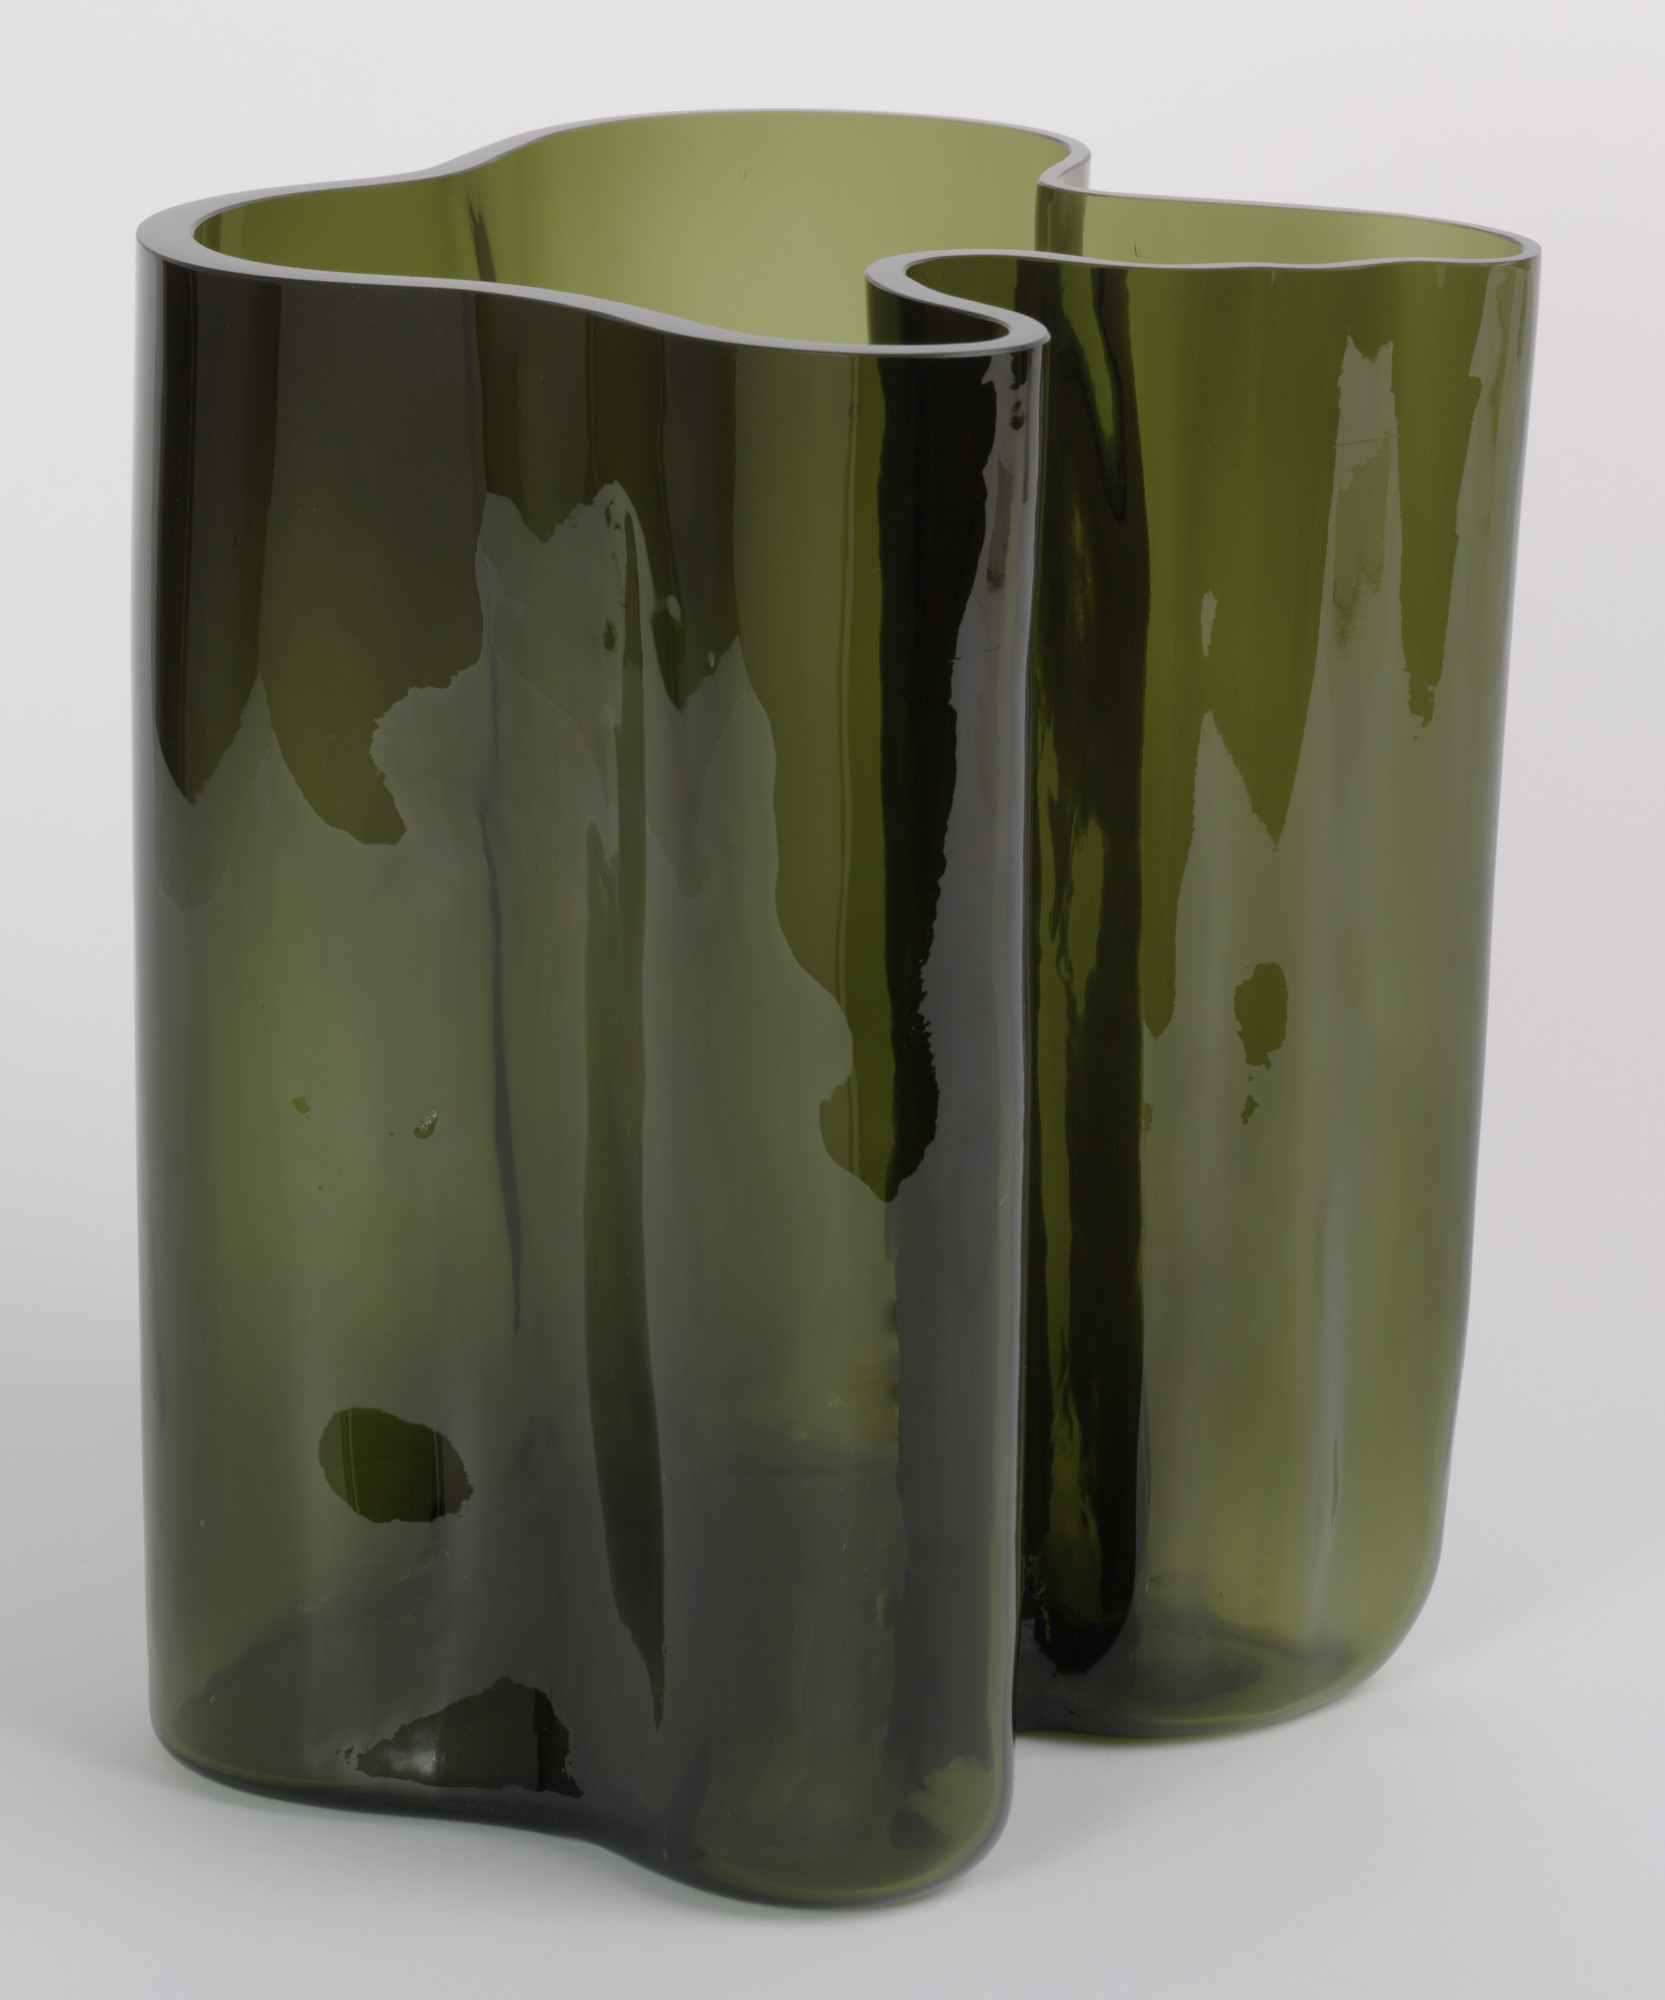 vase alvar viewitem new zoom green moss aalto iittala